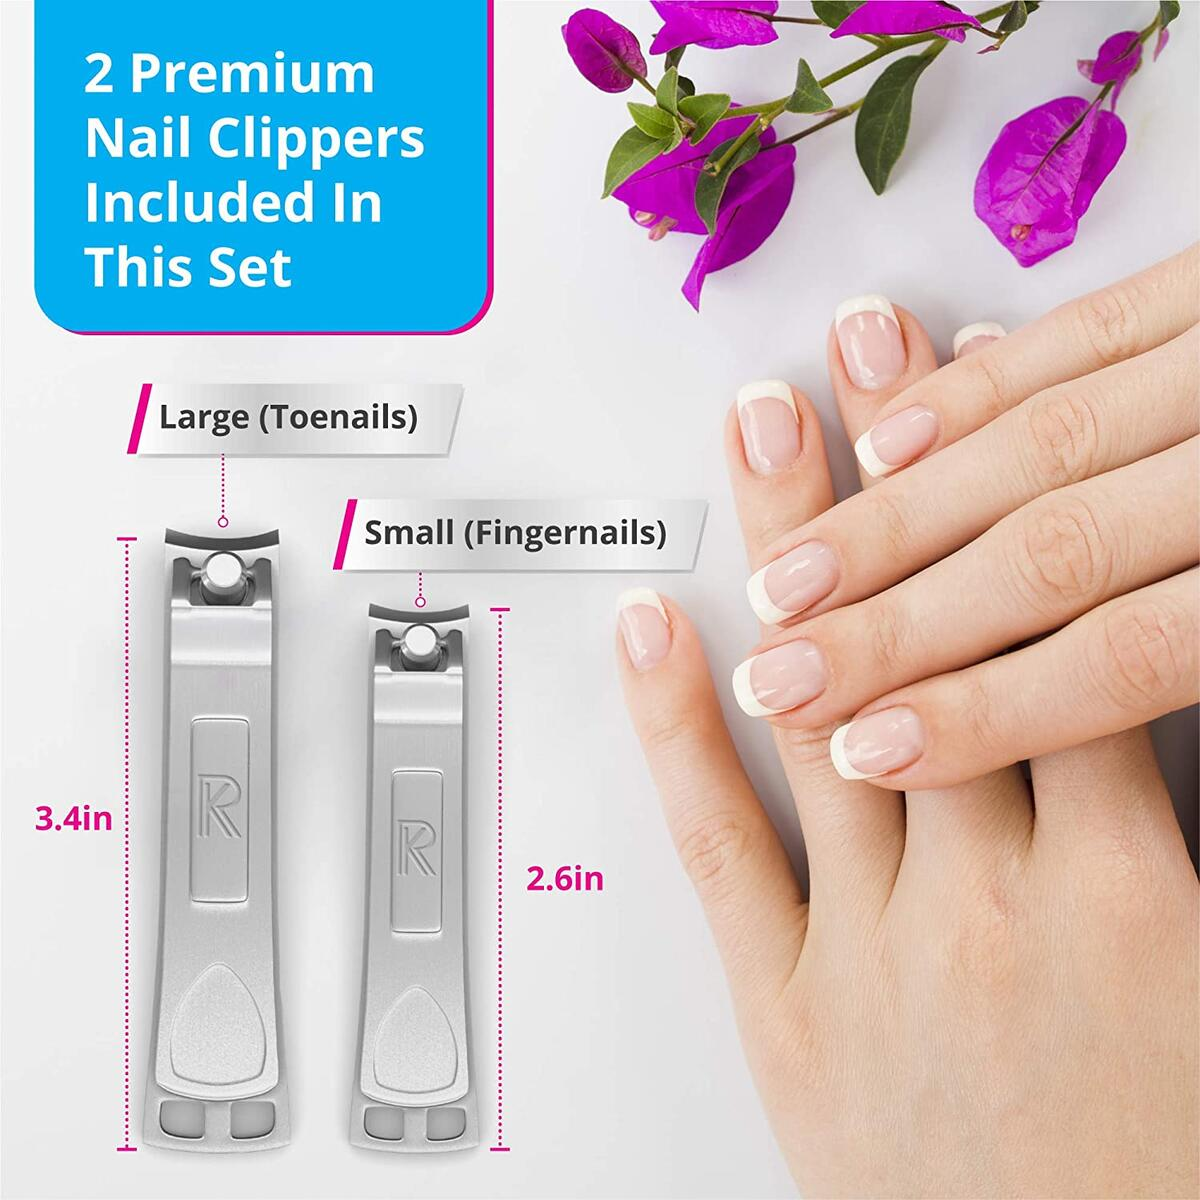 Nail Clippers Set - Fingernail Clippers & Toenail Clippers With FLIP OUT Nail Files/Cleaners